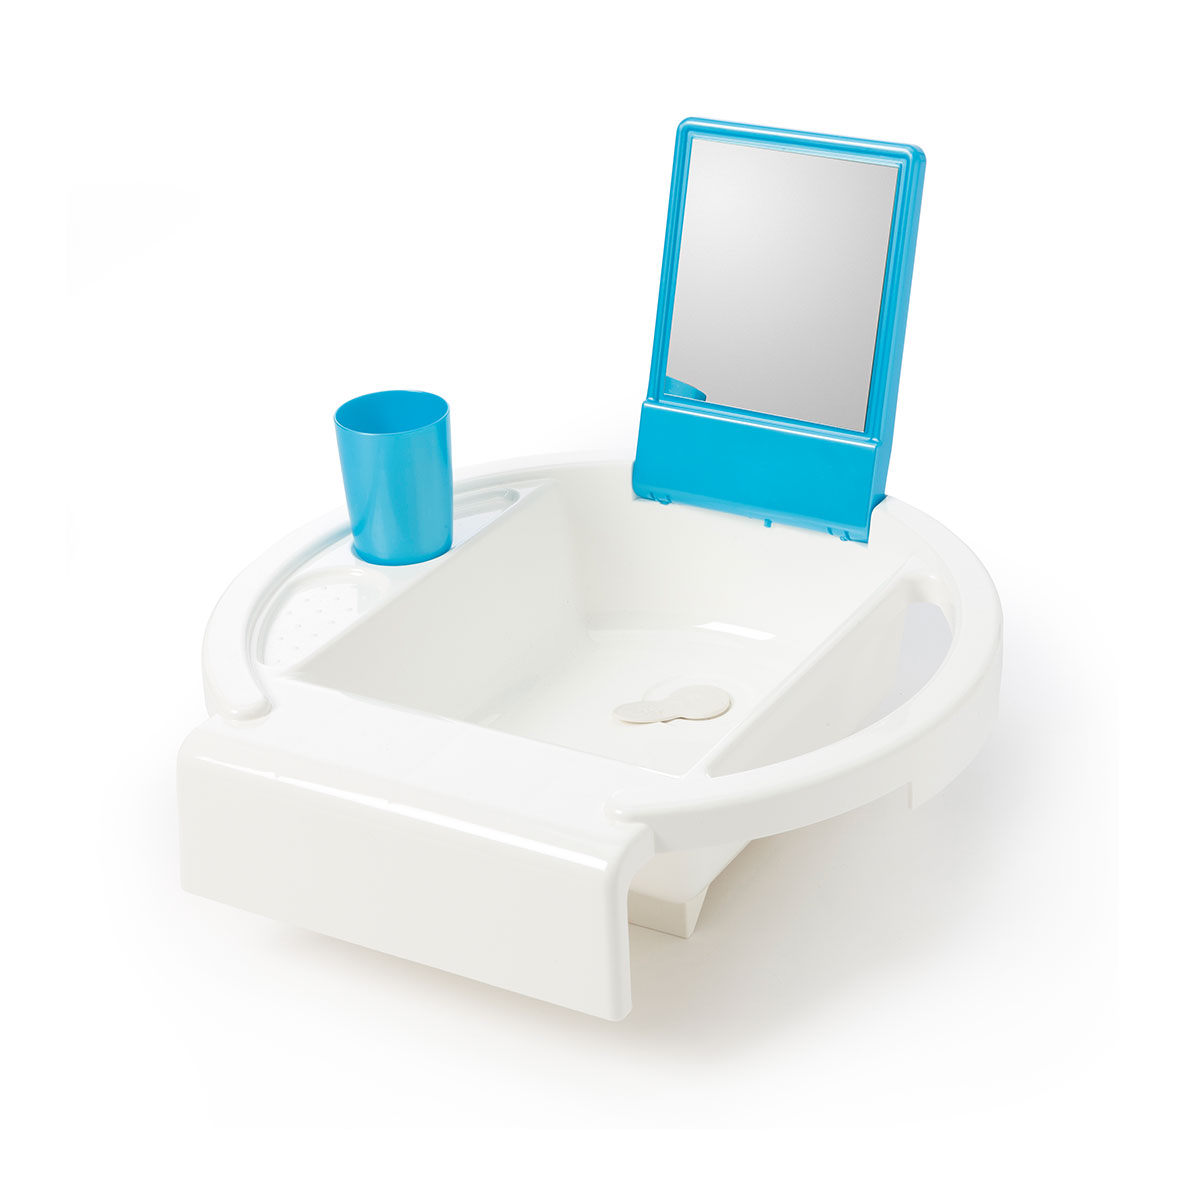 lavabo d apprentissage